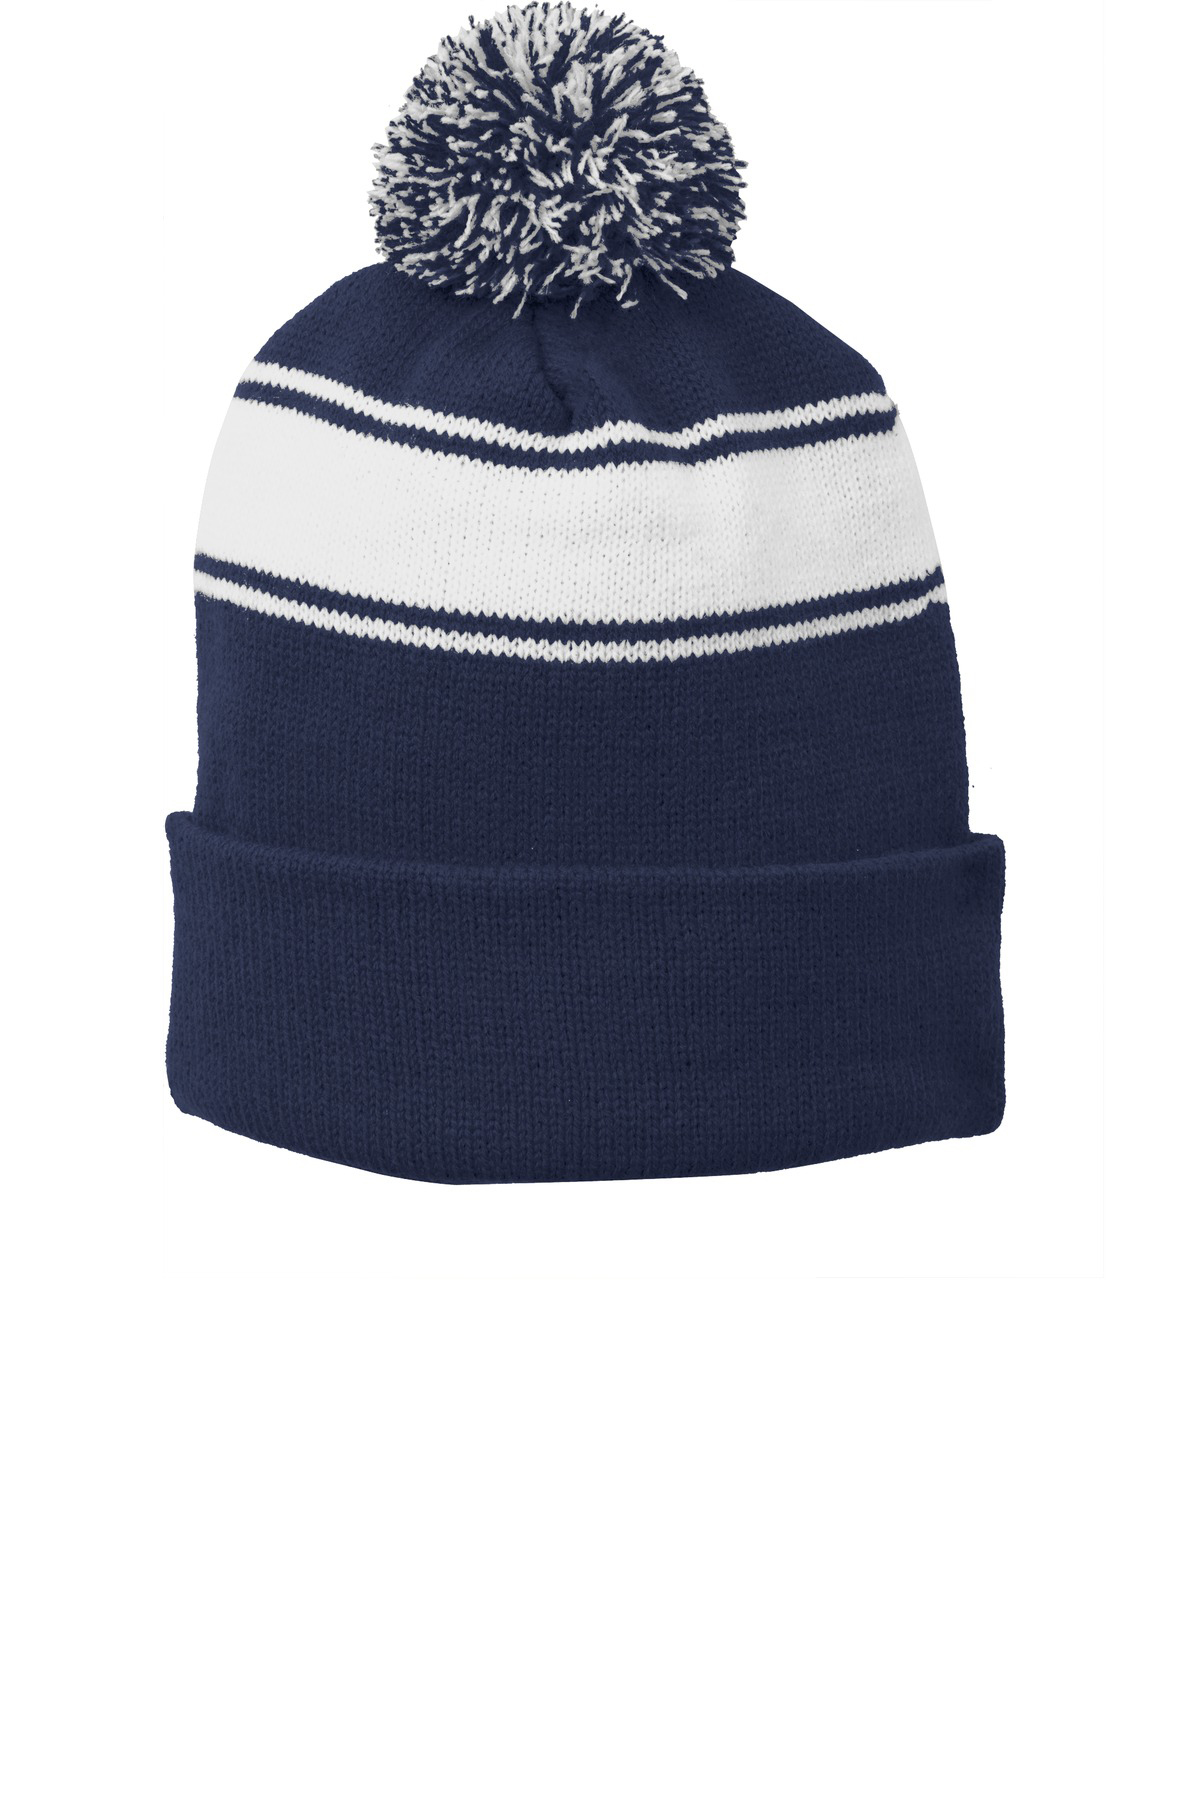 a74bfb55915 ... Pom Beanie. A maximum of 8 logos have been uploaded. Please remove a  logo from My Logos to continue